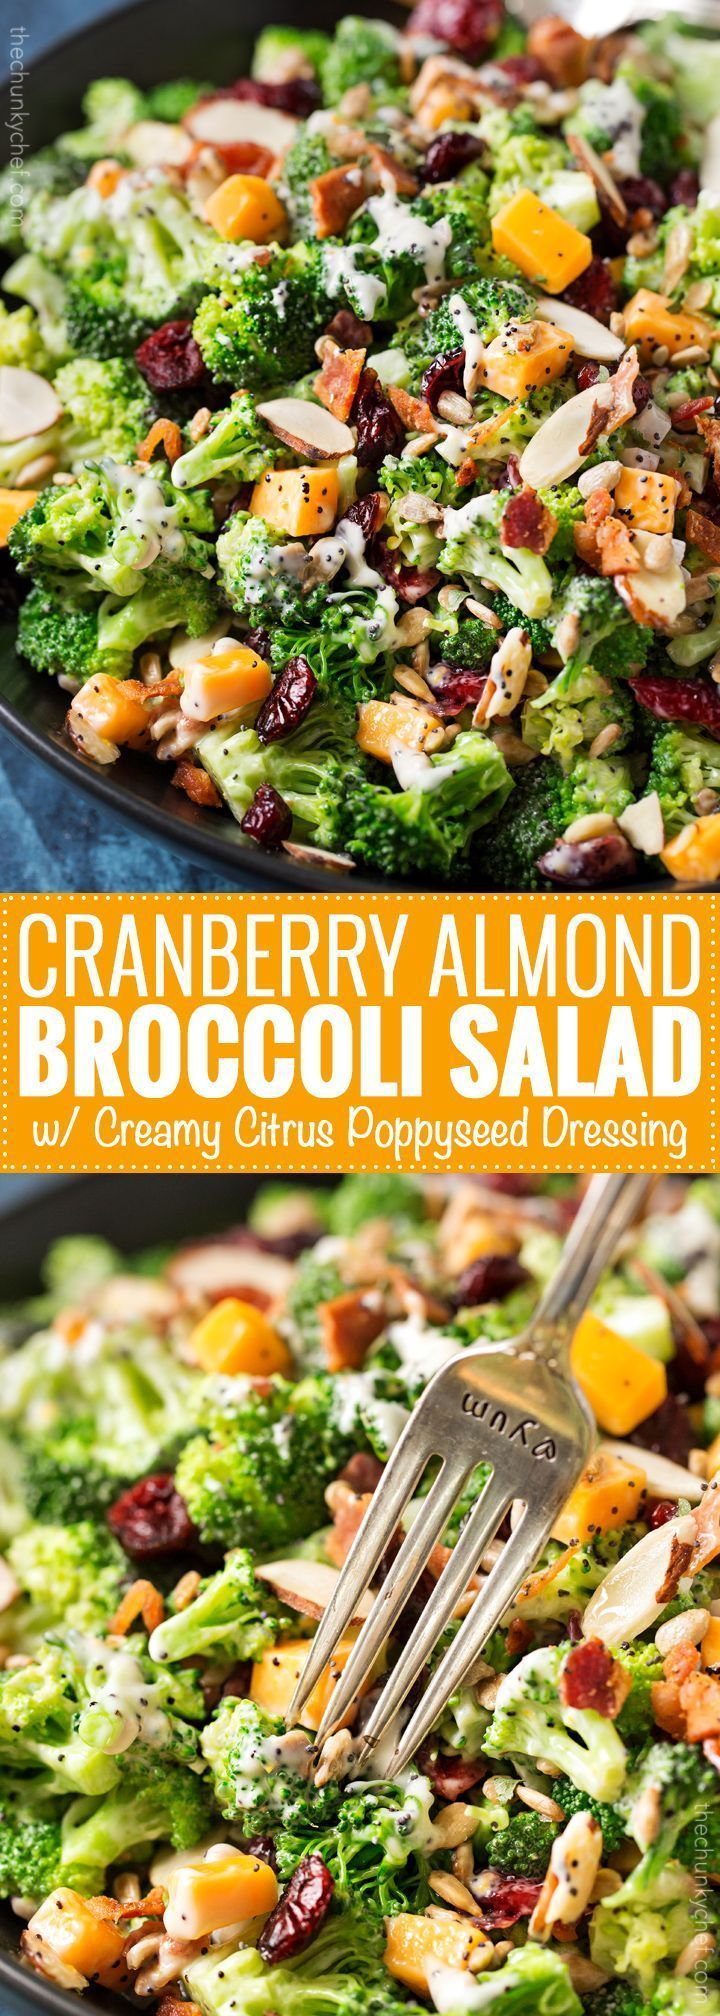 Cranberry Almond Broccoli Salad with Citrus Poppyseed Dressing  Classic broccoli salad is lightened up a bit, yet even bolder in flavor! It's the side dish everyone needs at their party!   thechunkychef.com